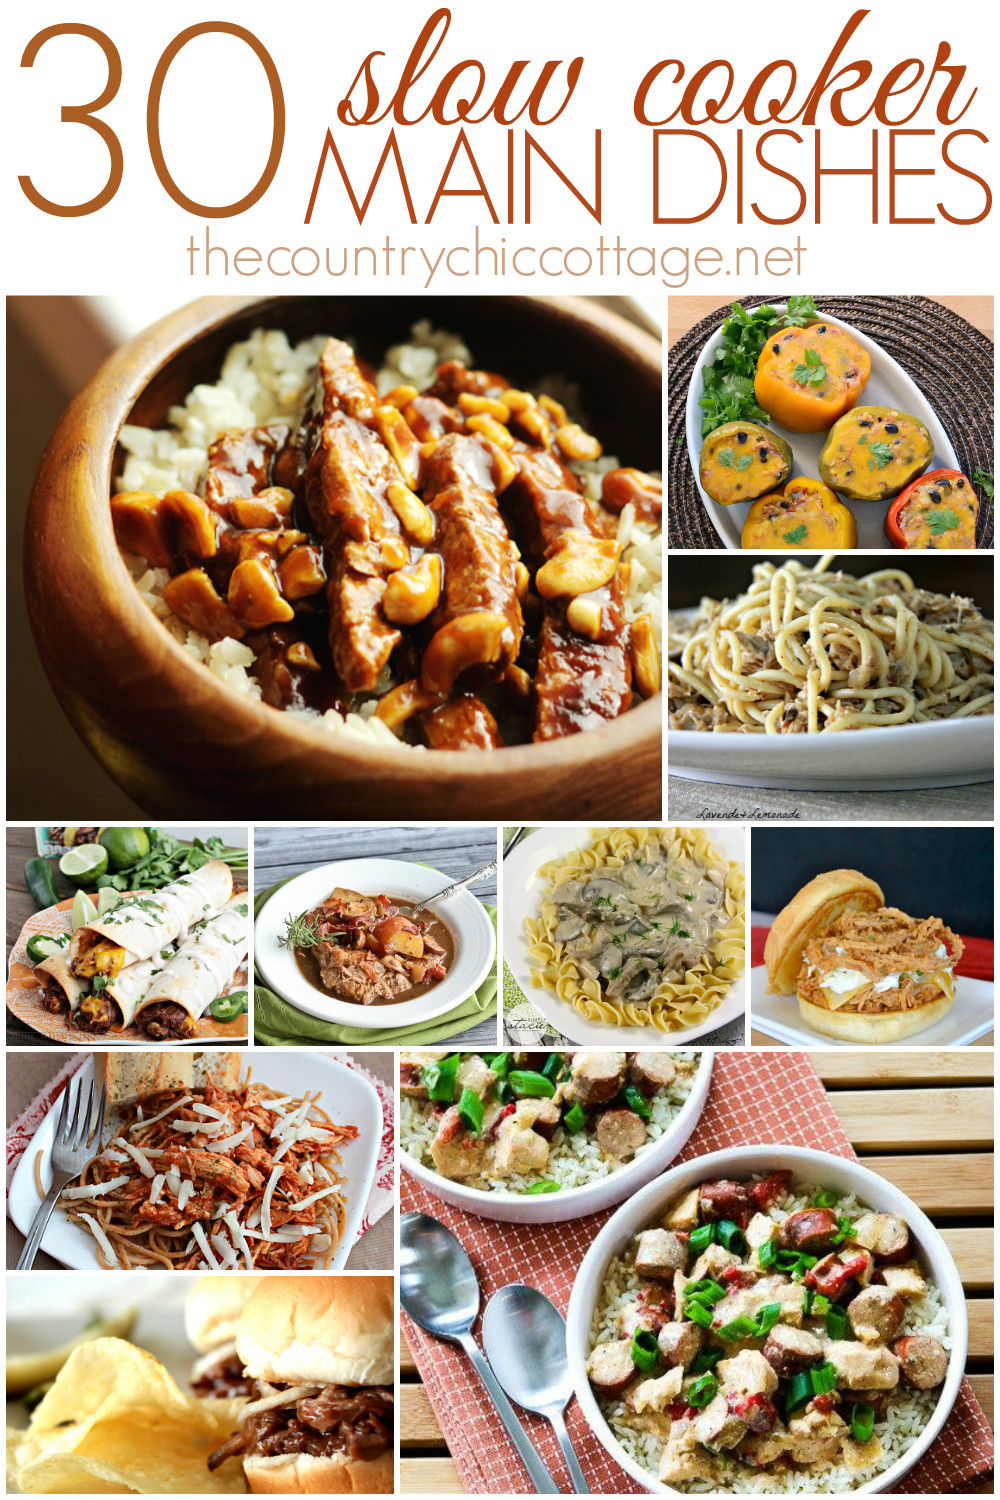 Crock Pot Main Dishes  30 Slow Cooker Main Dishes The Country Chic Cottage